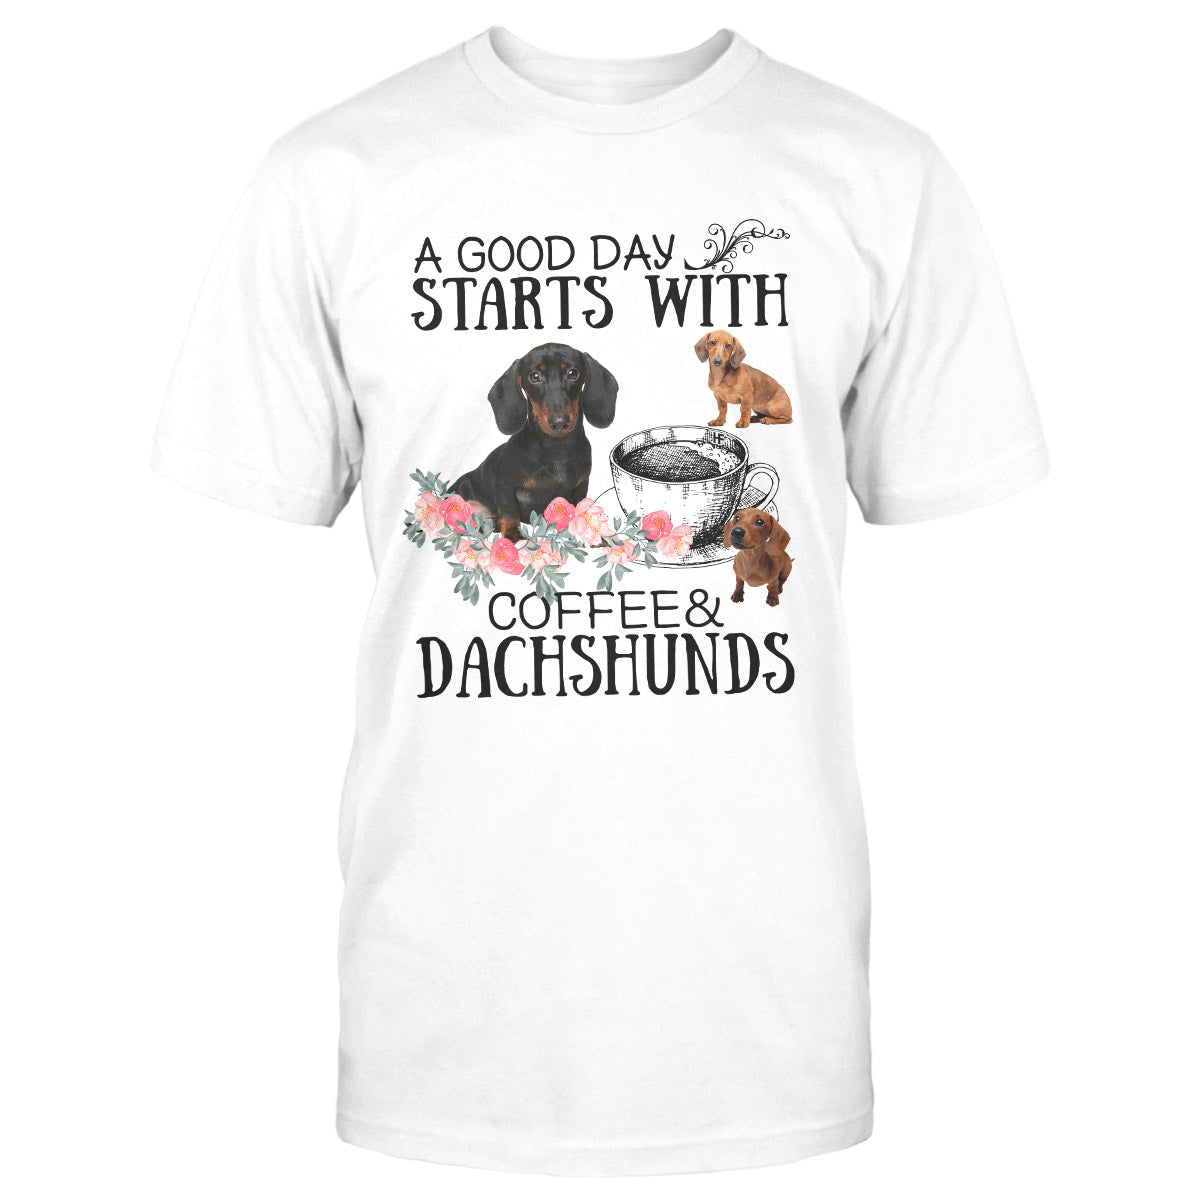 Dachshund Lovers Shirt 12 EZ01 1009 Classic T-shirt